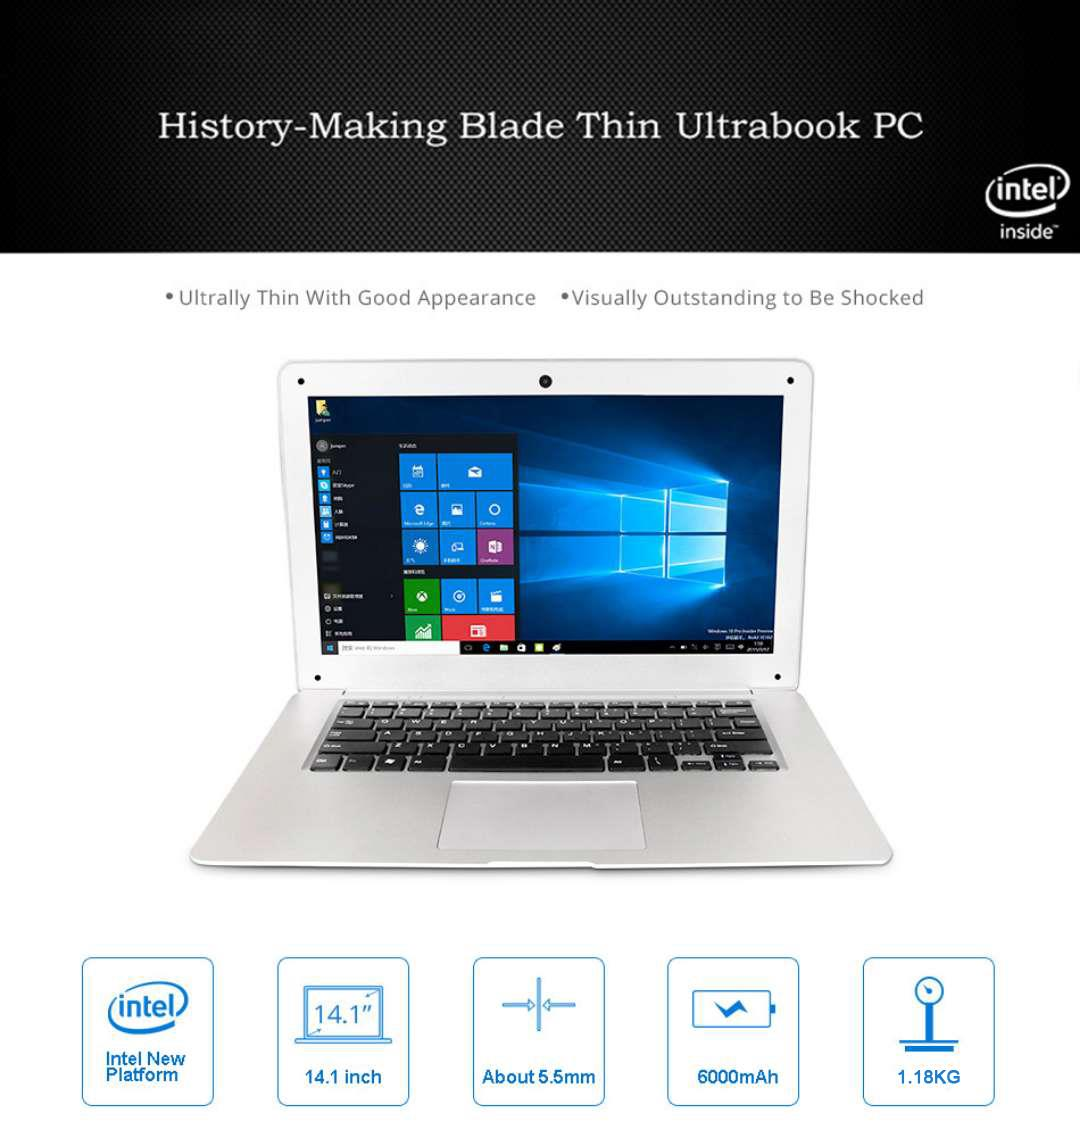 Binai G14pro Notebook Windows 10 14.1 Inch Intel Cherry Trail X5 Z8350 Quad Core 4GB/64GB Laptop